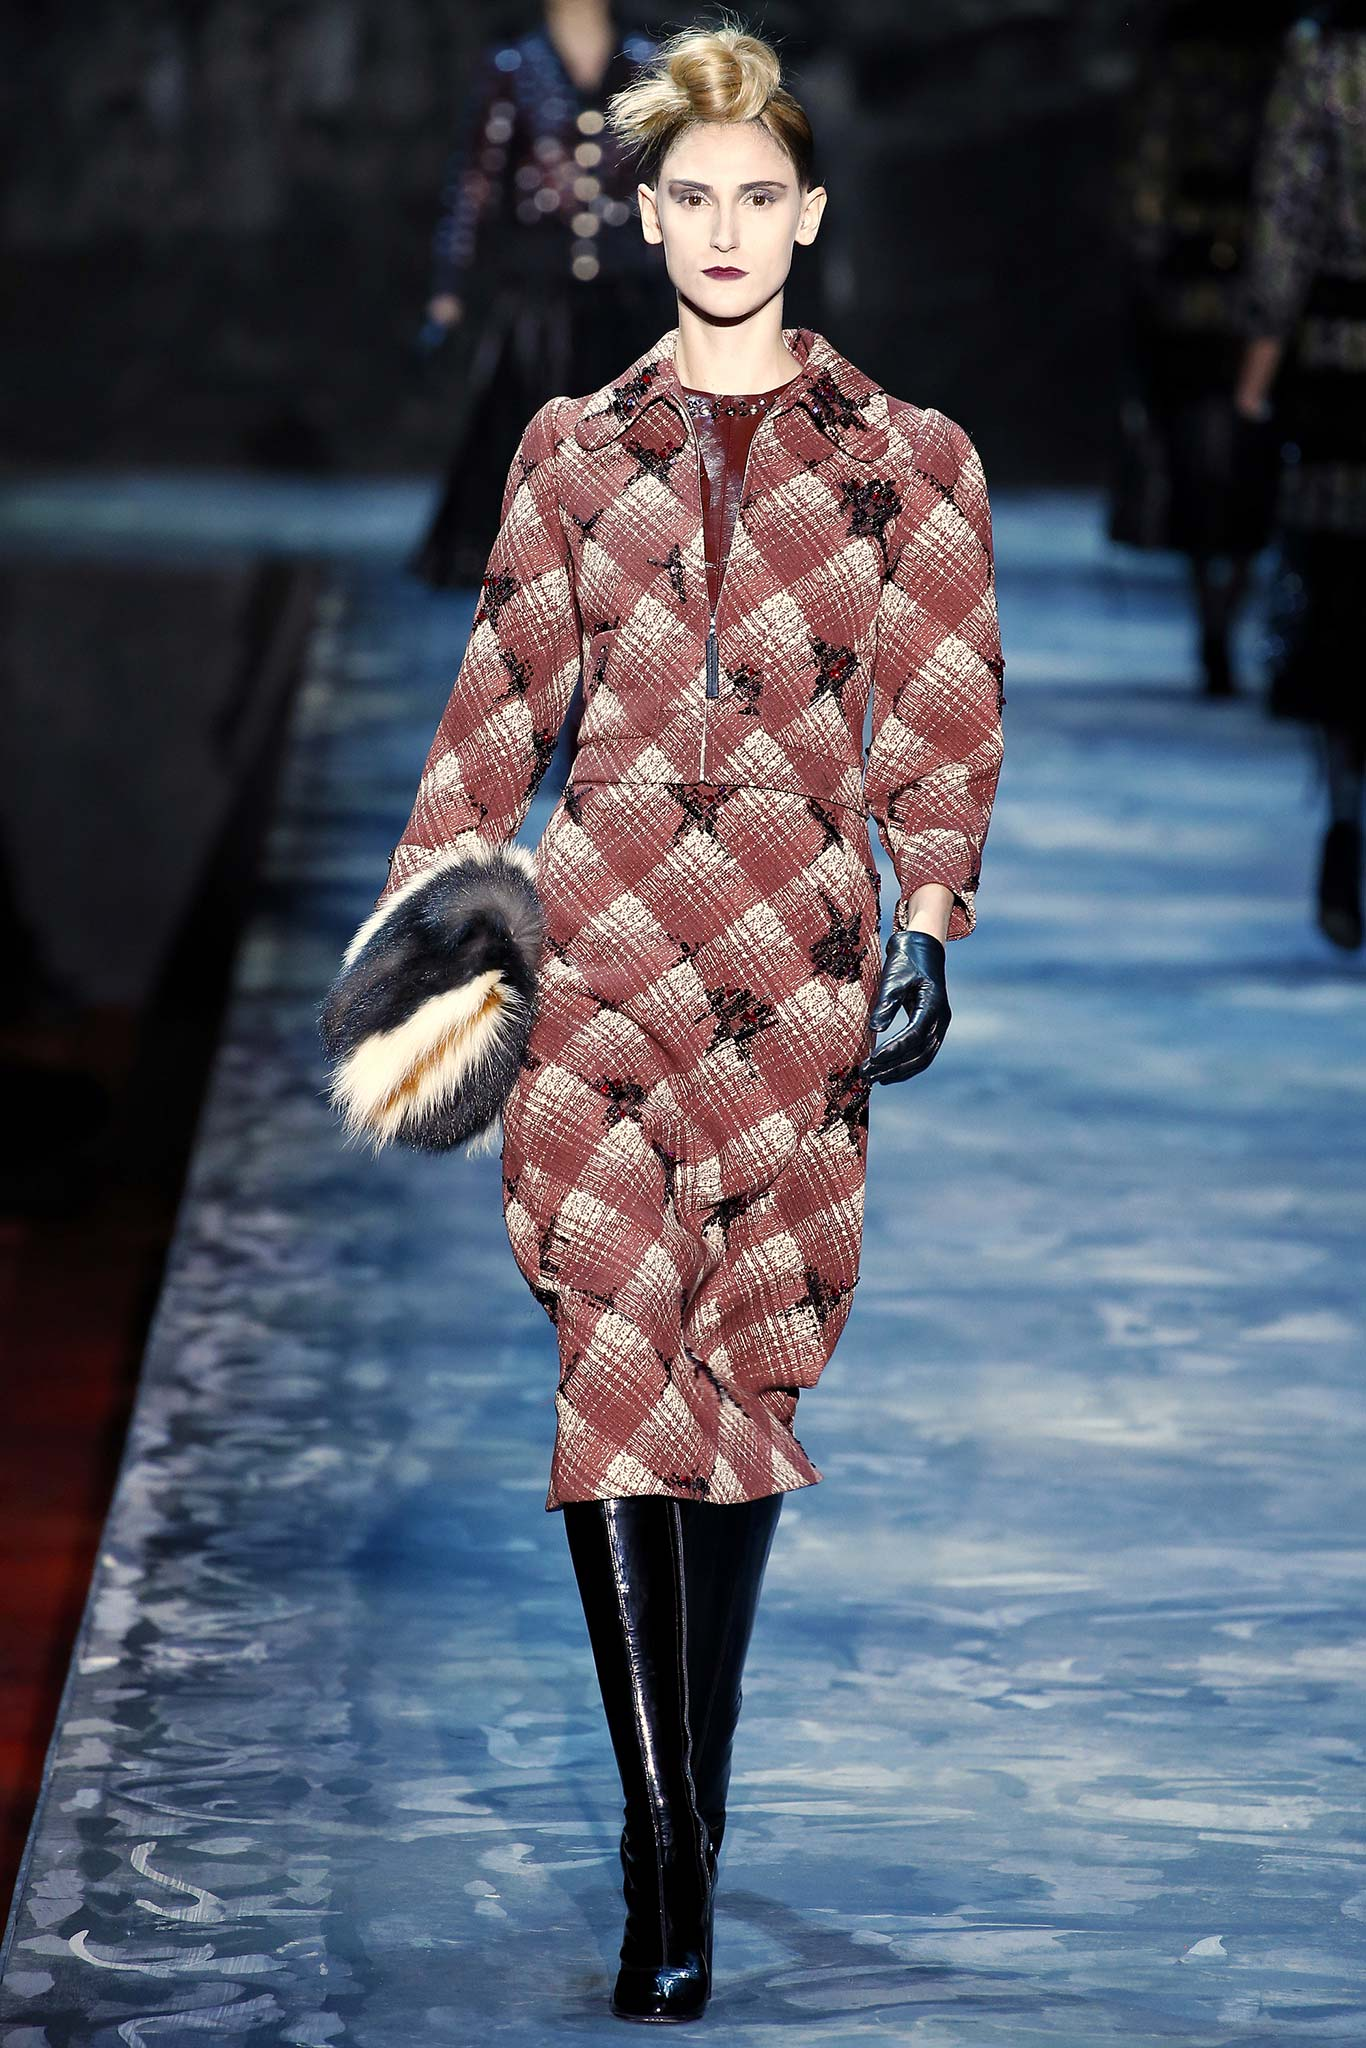 Marc Jacobs' Fall